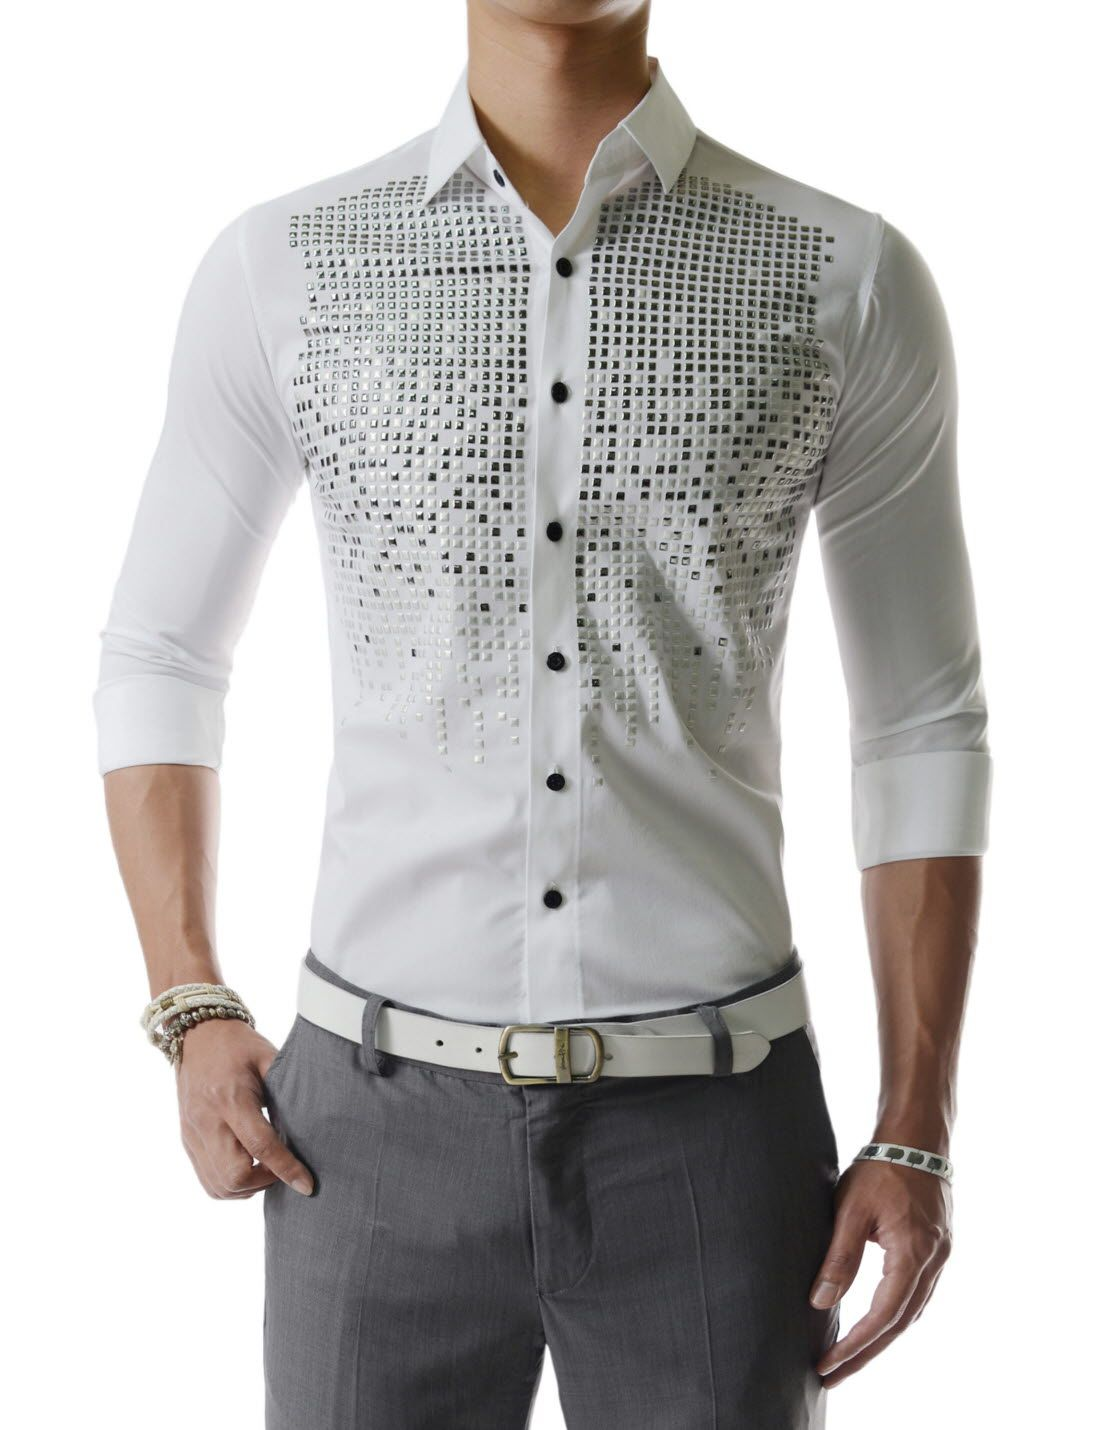 f98fcf3c62f Square Metallic Beads Bling Studs Gems Stretchy Long Sleeve Shirts ...